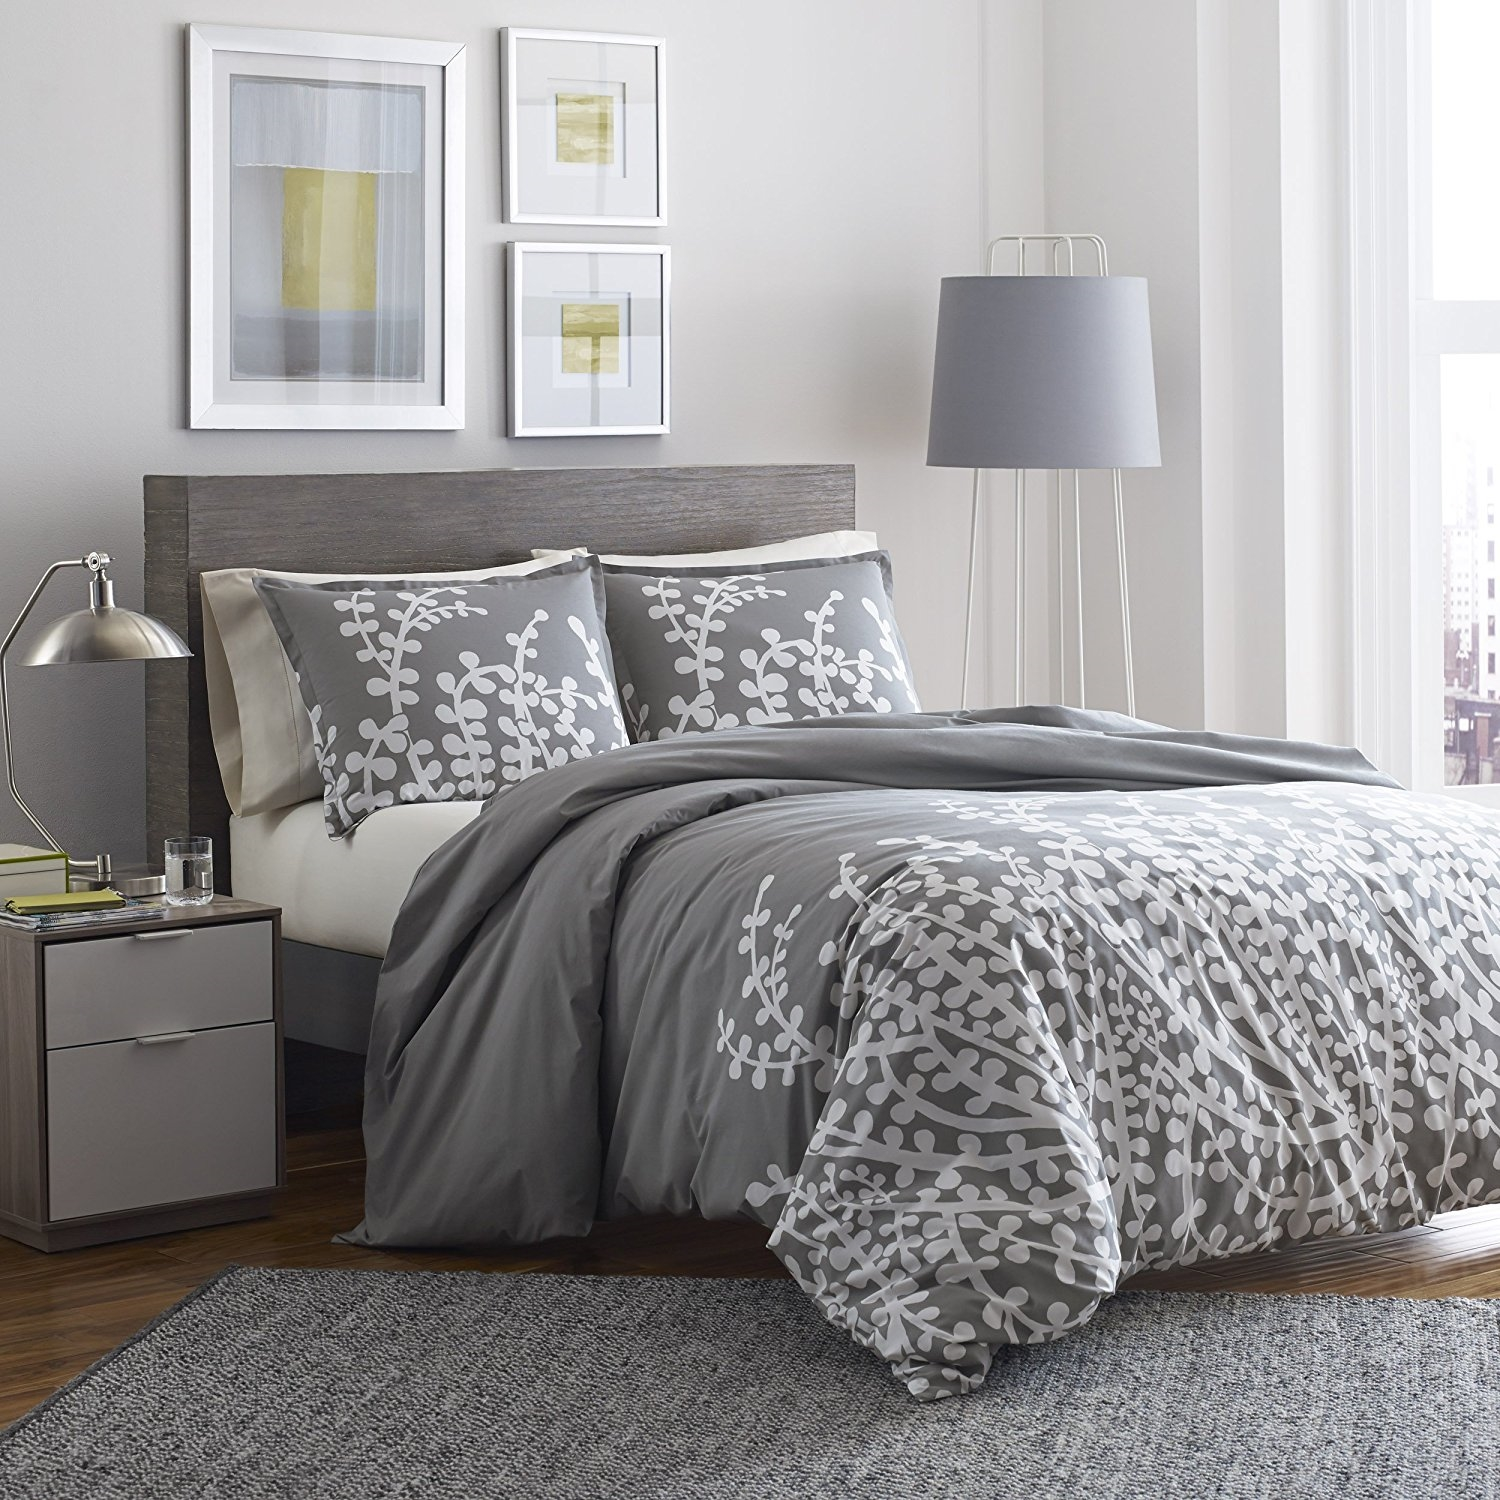 Full Queen 100 Percent Cotton Comforter Set With Grey White